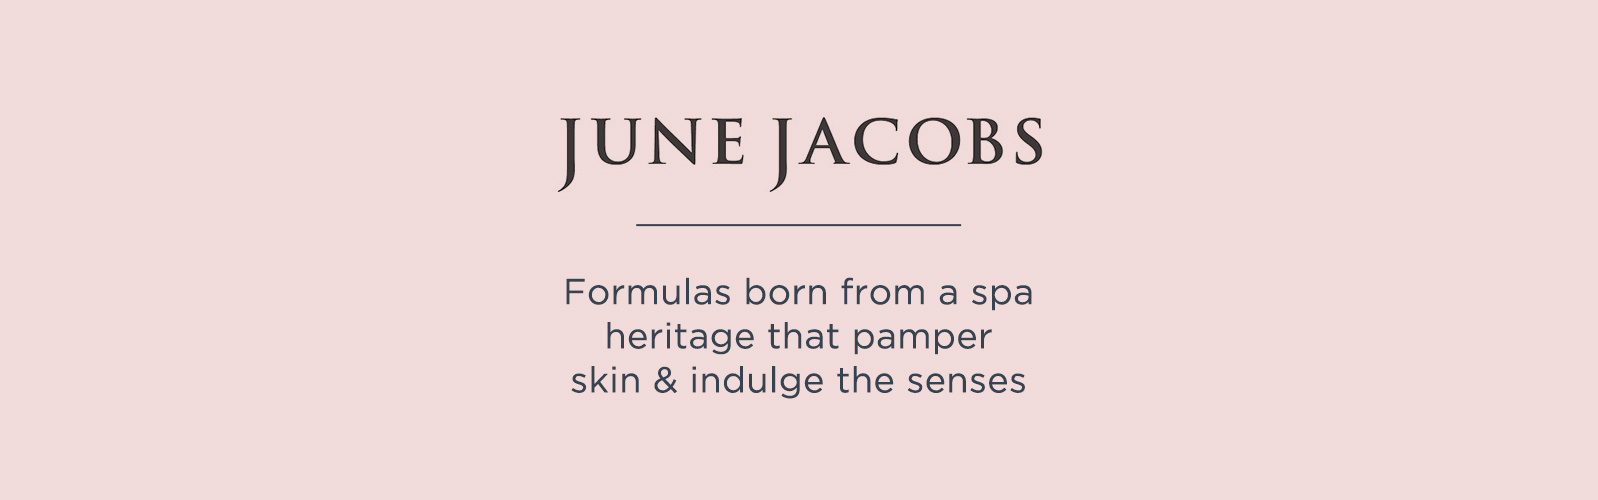 June Jacobs.  Formulas born from a spa heritage that pamper skin & indulge the senses